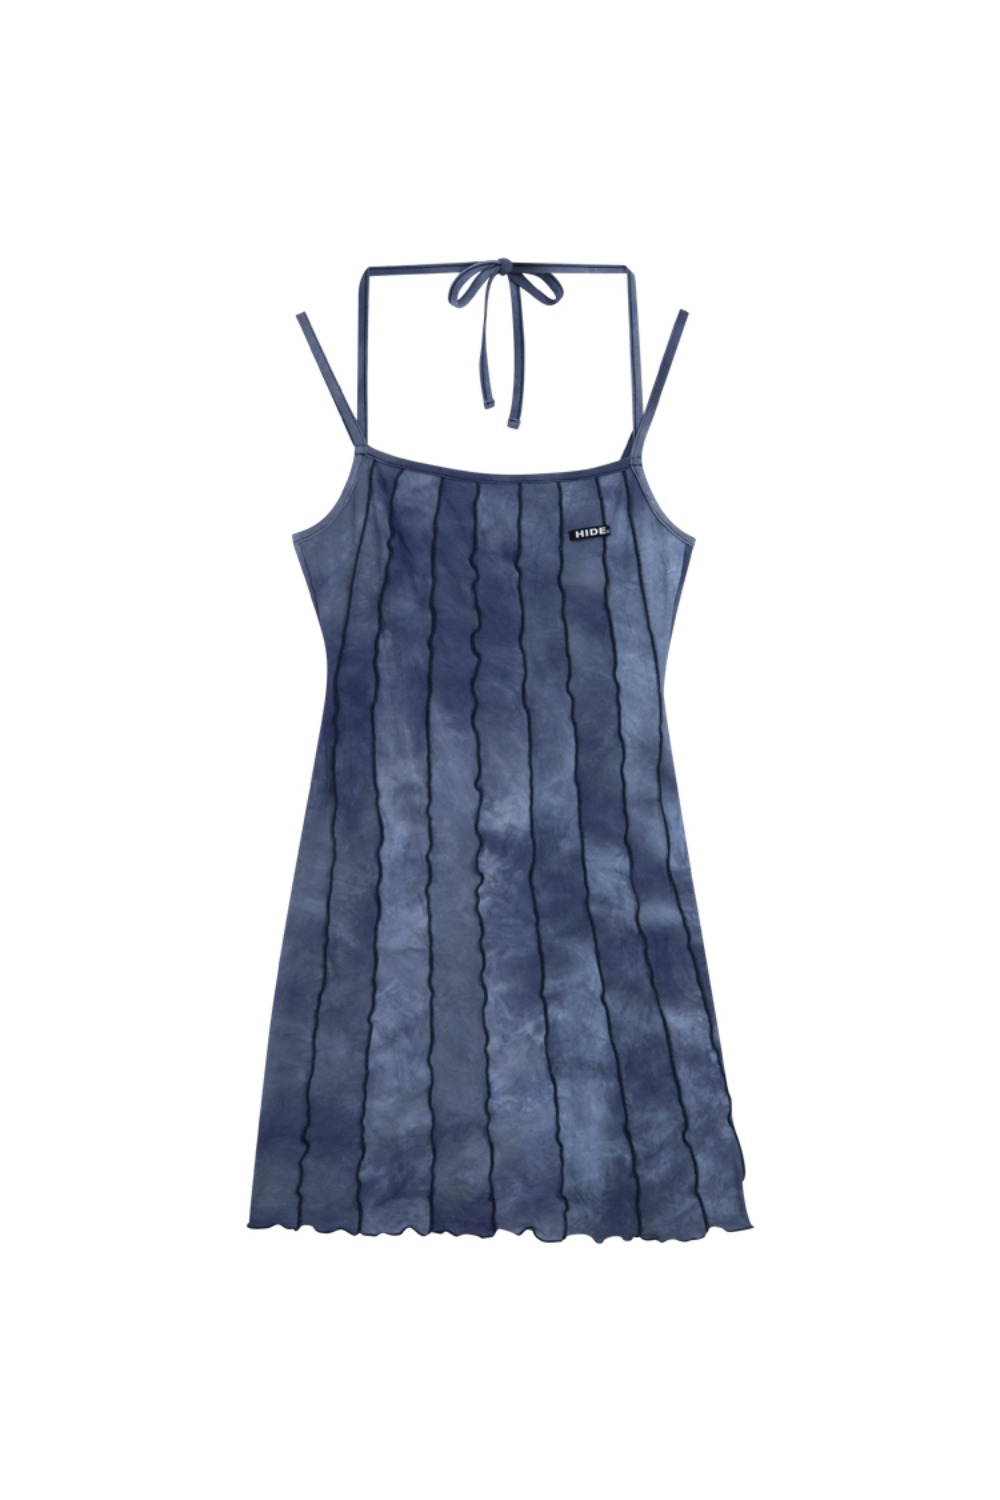 HIDE Lettuce Edge Dress DEEP NAVY